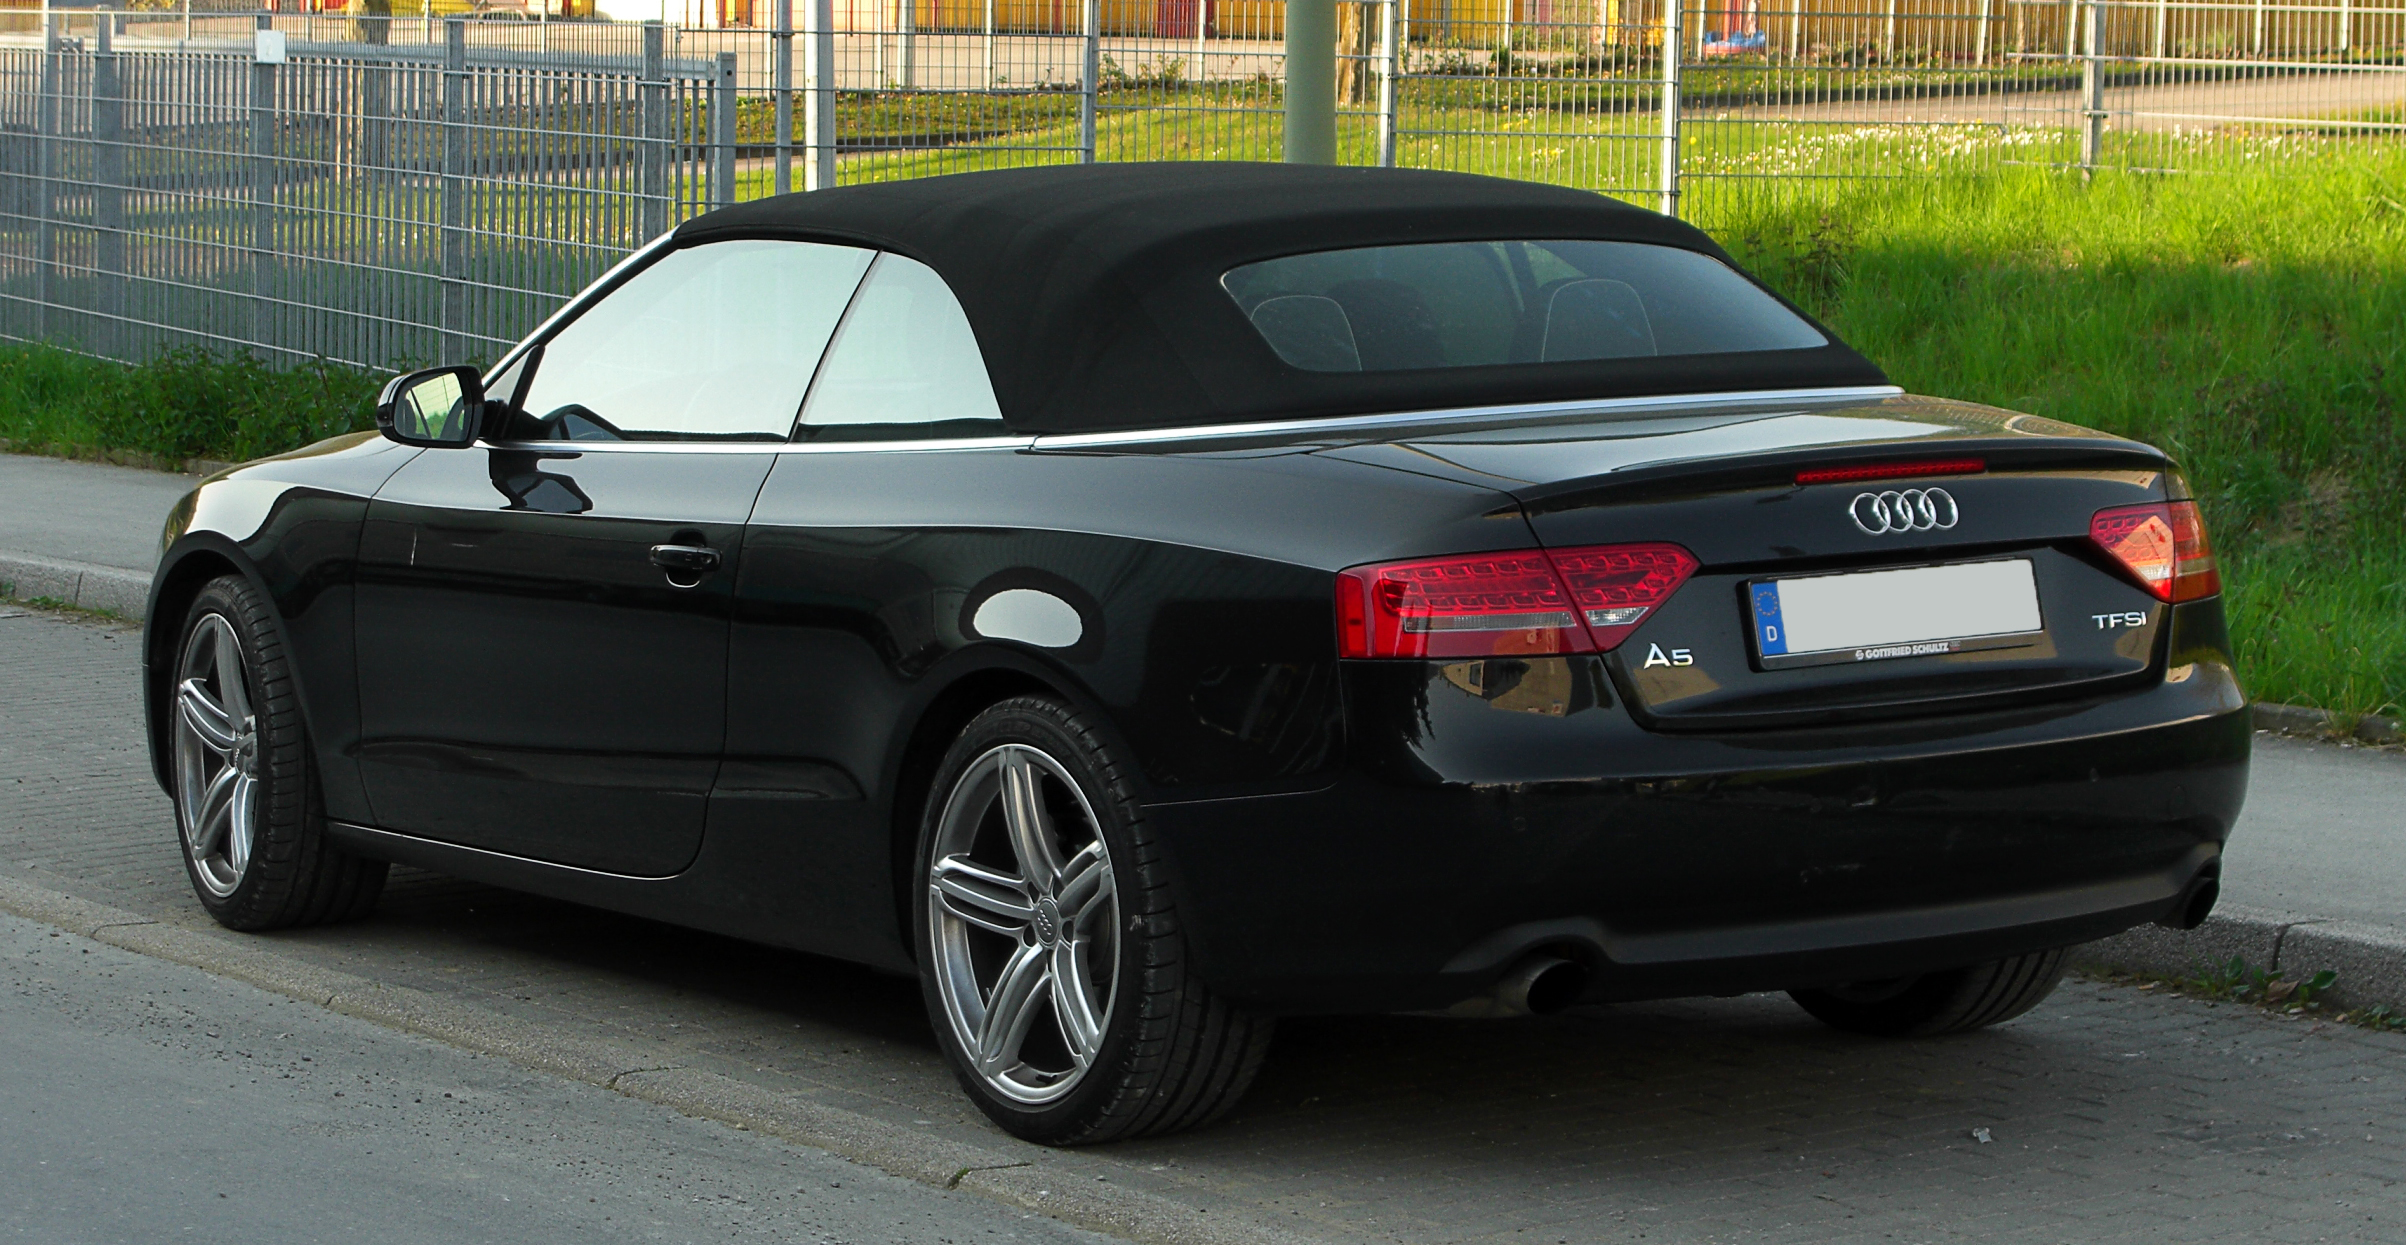 file audi a5 cabriolet tfsi heckansicht 18 april 2011 w wikimedia commons. Black Bedroom Furniture Sets. Home Design Ideas